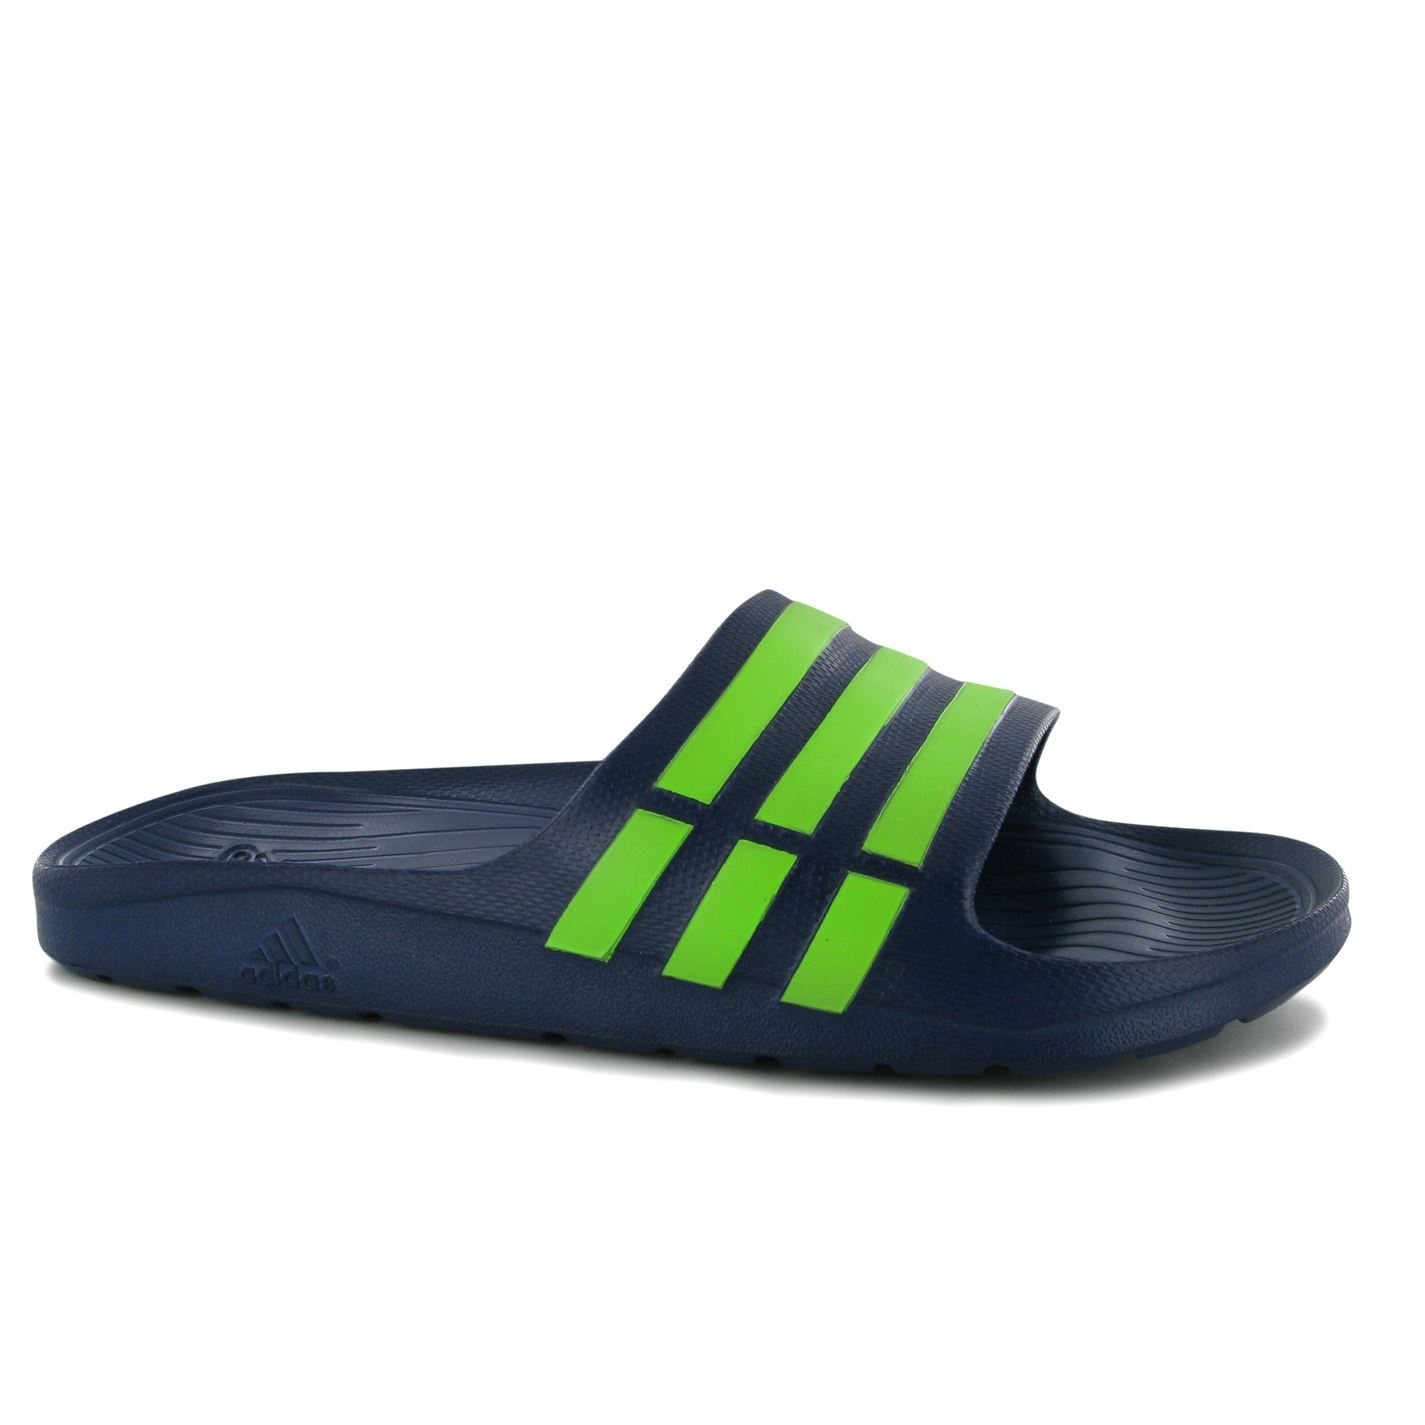 adidas mens duramo slide on pool shoes sandals slippers